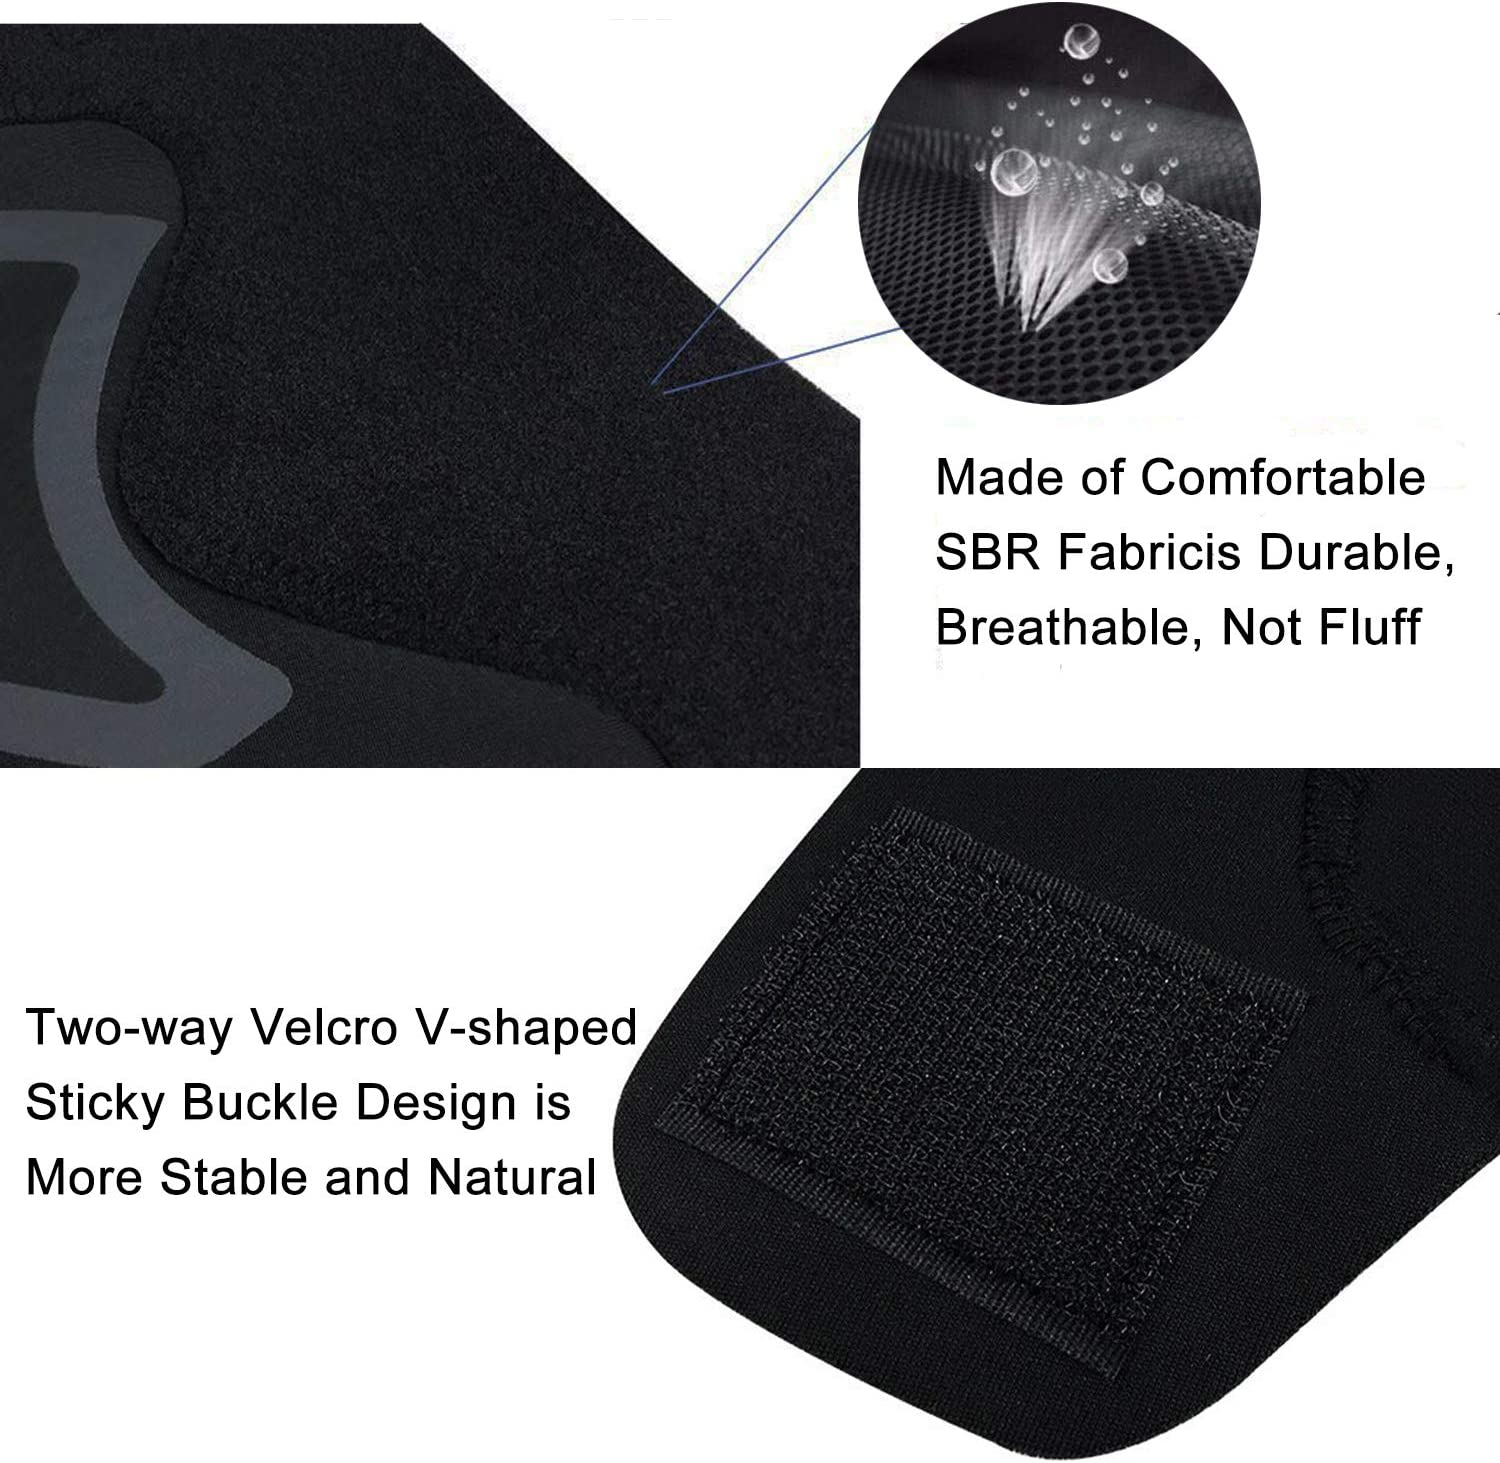 Elastic Ankle Braces for Sports Protection Breathable Ankle Supports for Women /& Men Adjustable Ankle Support Brace for Ankle Wrap Protect Against Chronic Ankle Strain Sprained Fatigue Ankle Brace